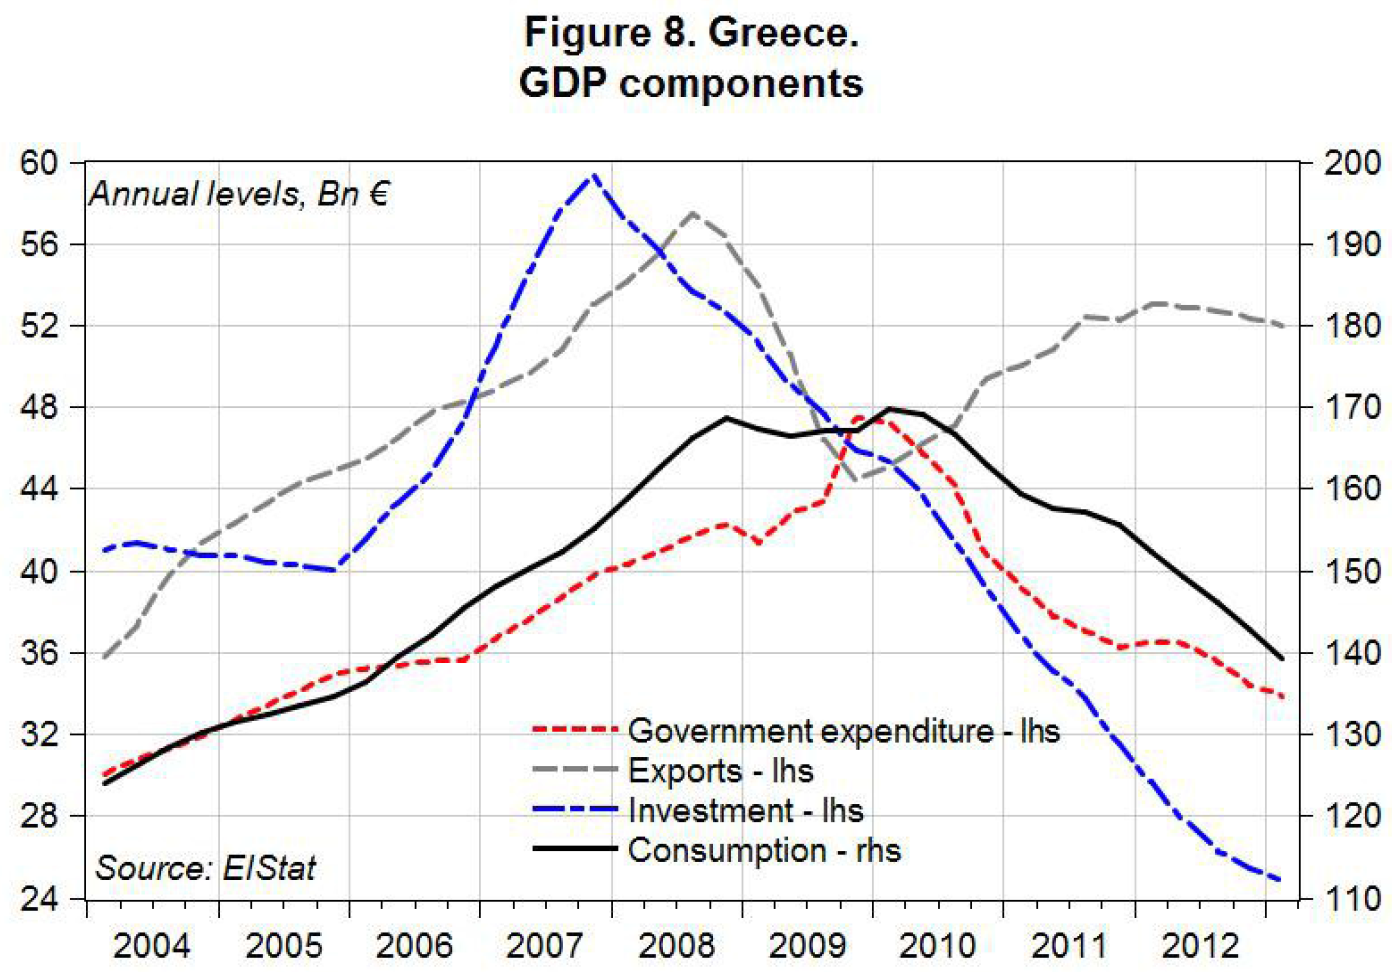 SA_Greece 2013_GDP Components_fig8